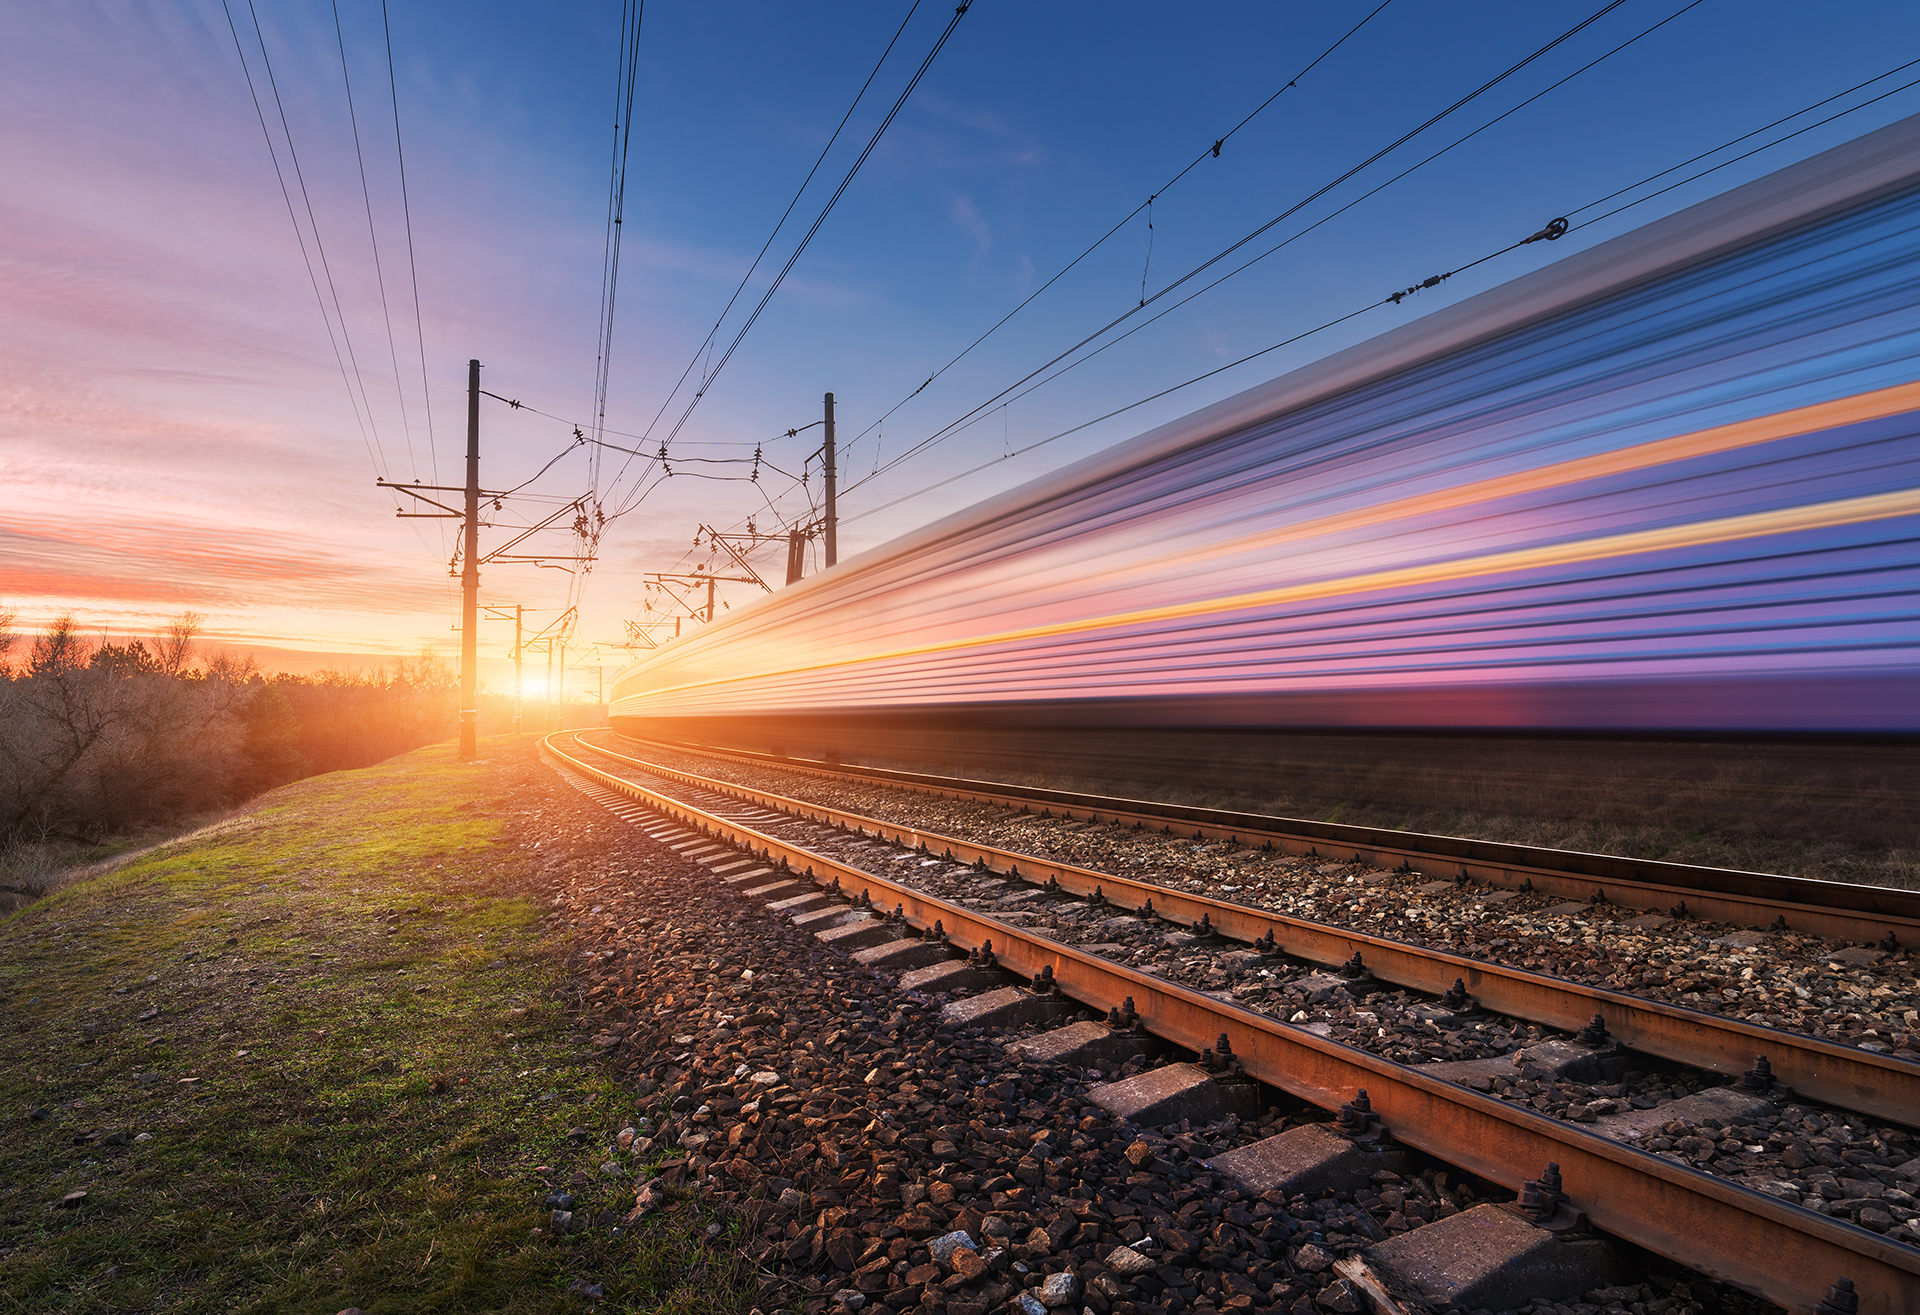 MERMEC STE enters the ANGEL group to serve railway market with signalling, telecoms and electric traction